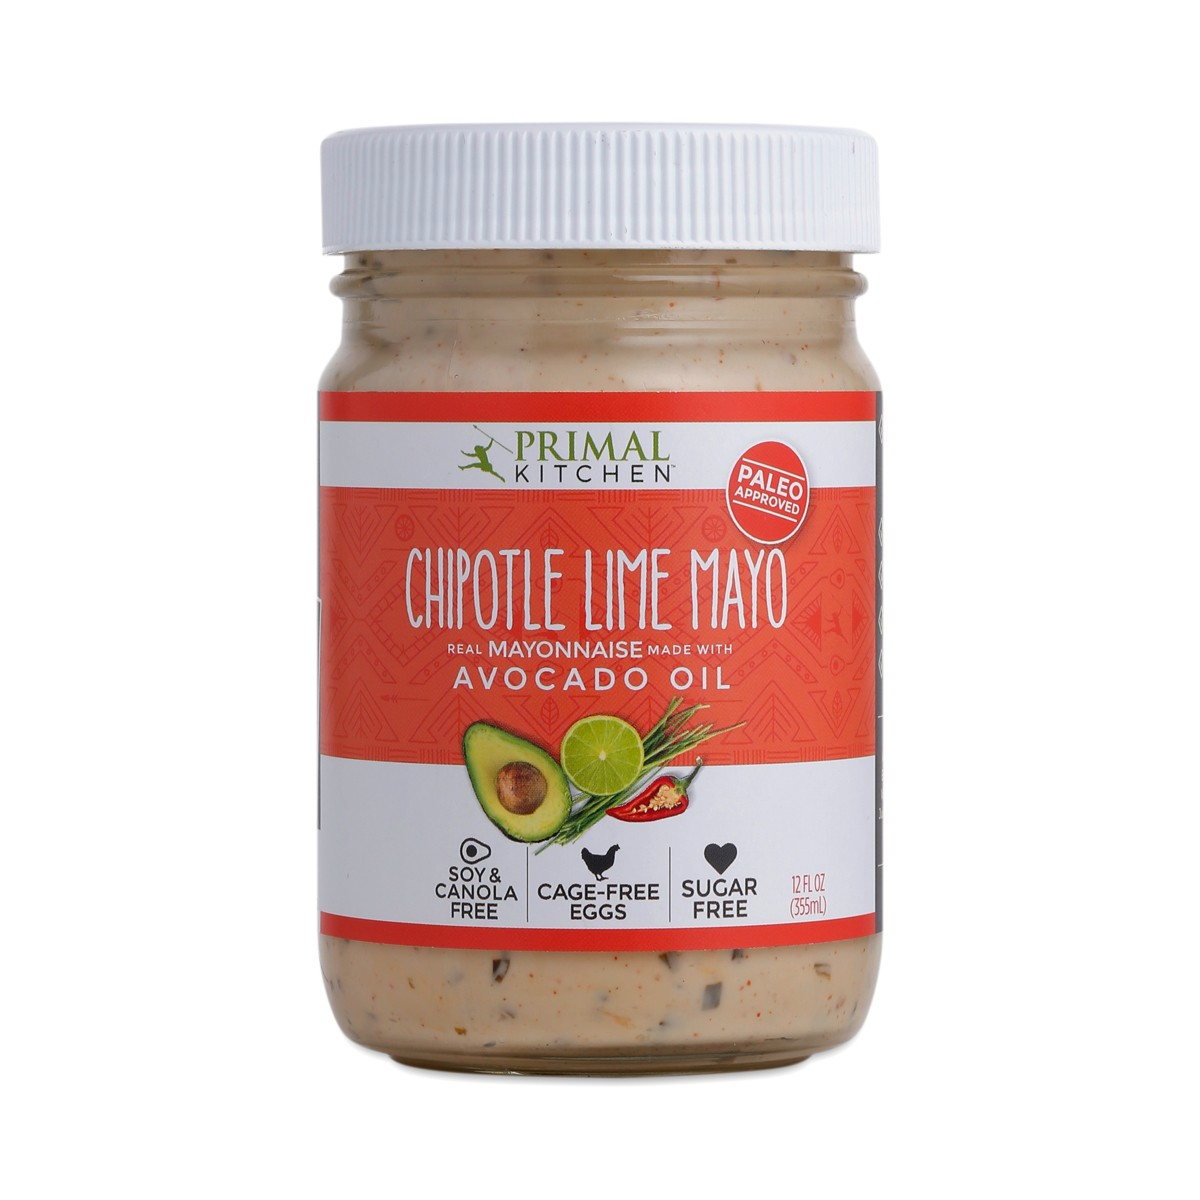 Primal Kitchen Chipotle Lime Mayo with Avocado Oil - Thrive Market